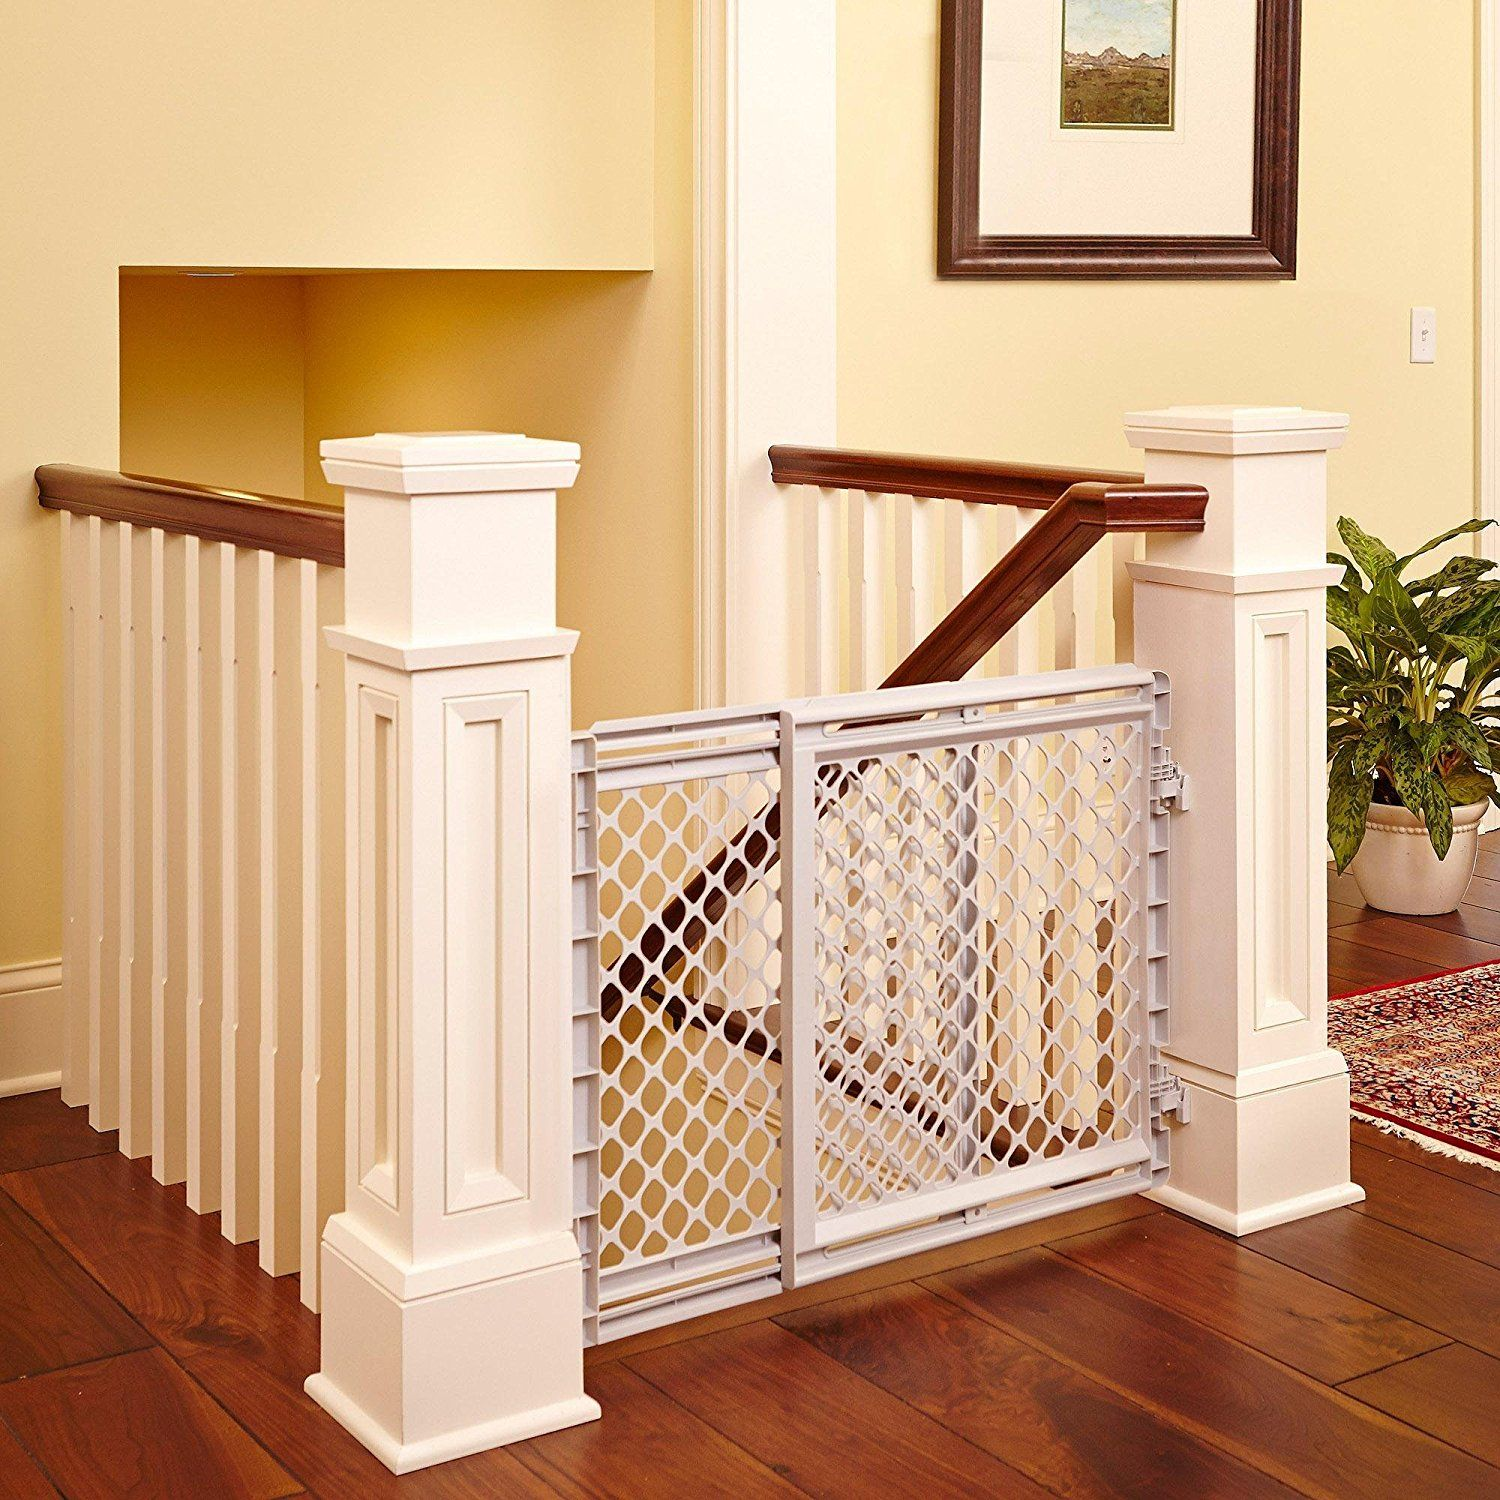 26' Safe Rounded Edges Children Protected Plastic Stairway Gate White Insider' Special